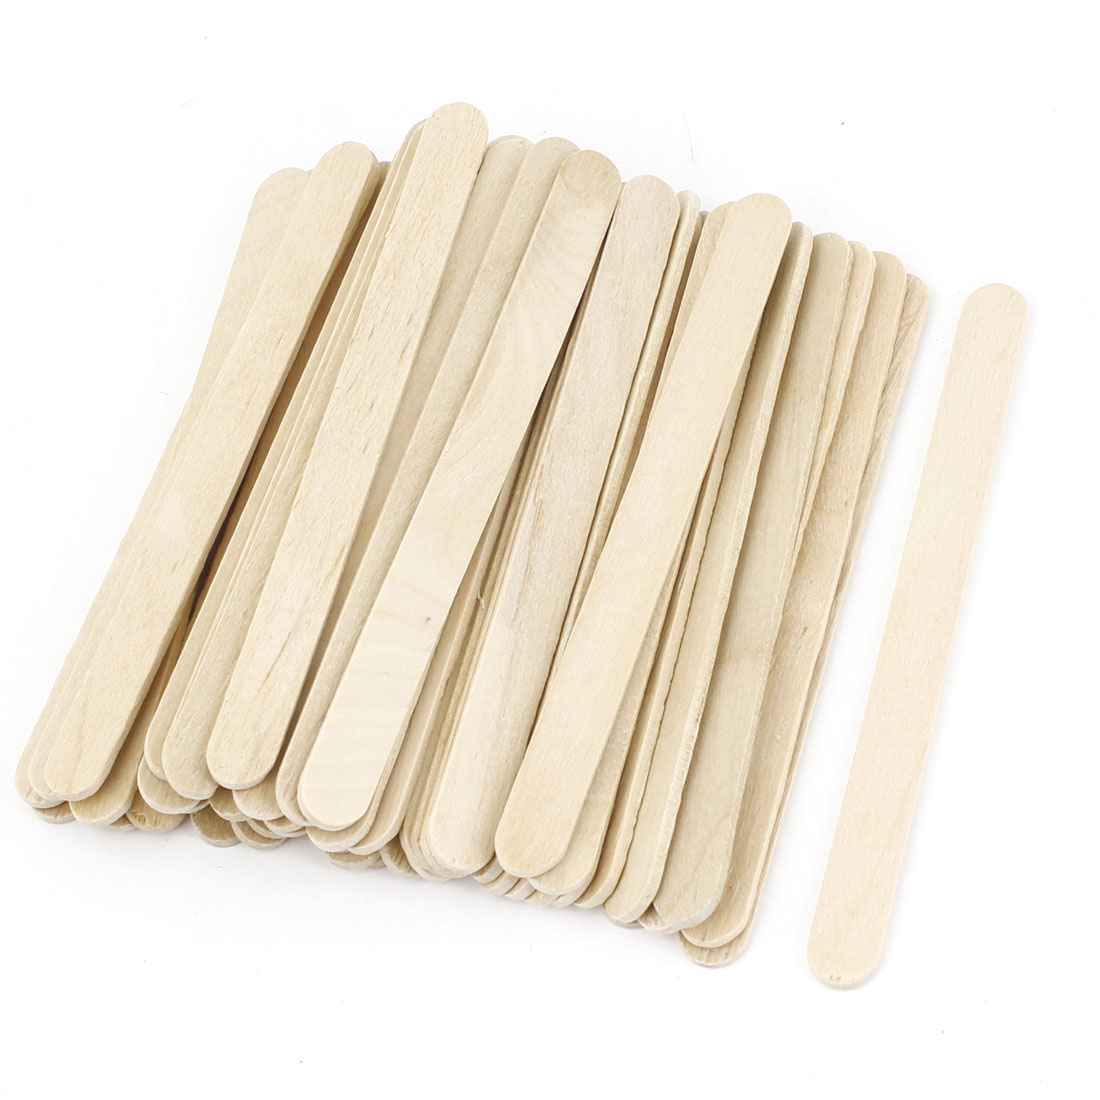 51PCS Wooden Cosmetic Tool Mask Mixing Stick for Lady